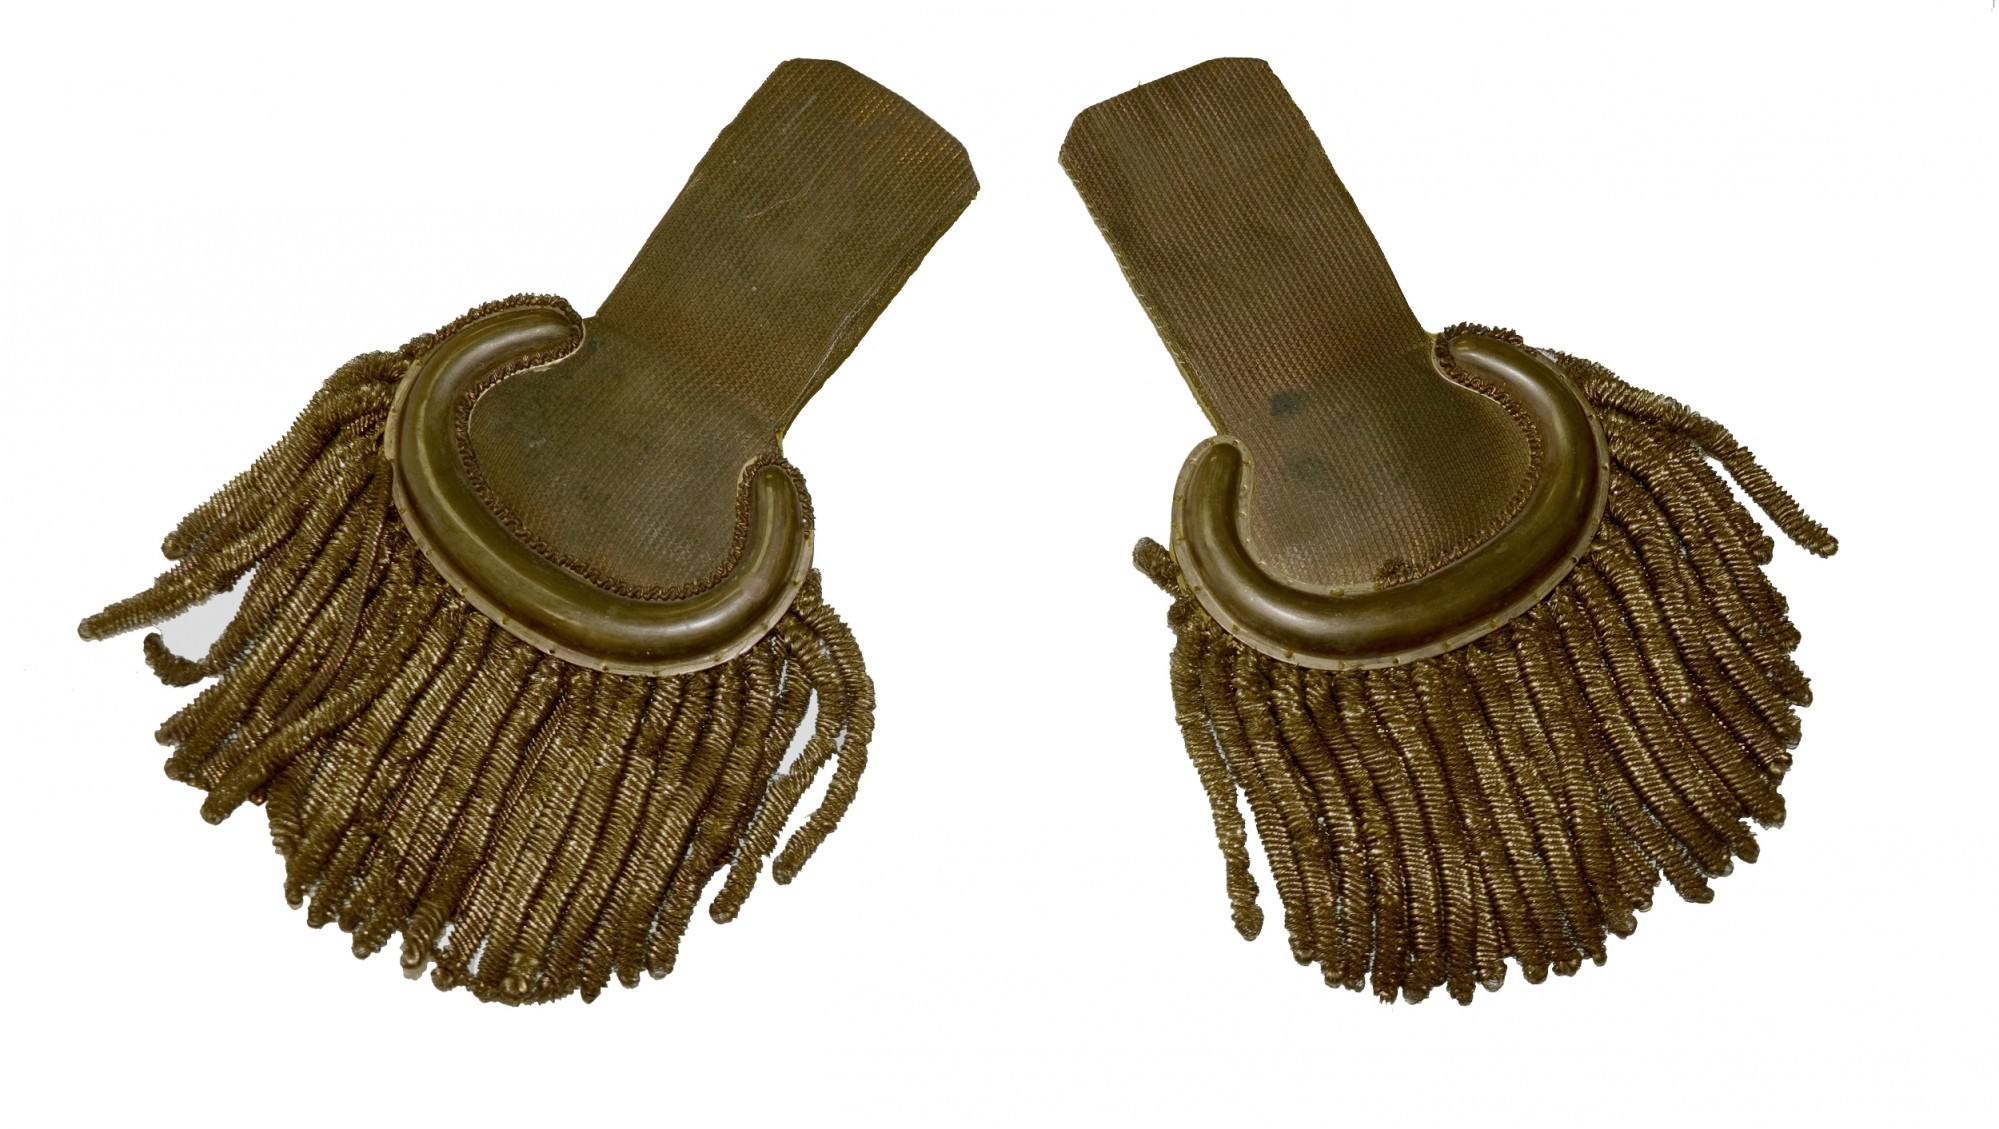 MILITIA EPAULETTES FROM GETTYSBURG COLLECTION